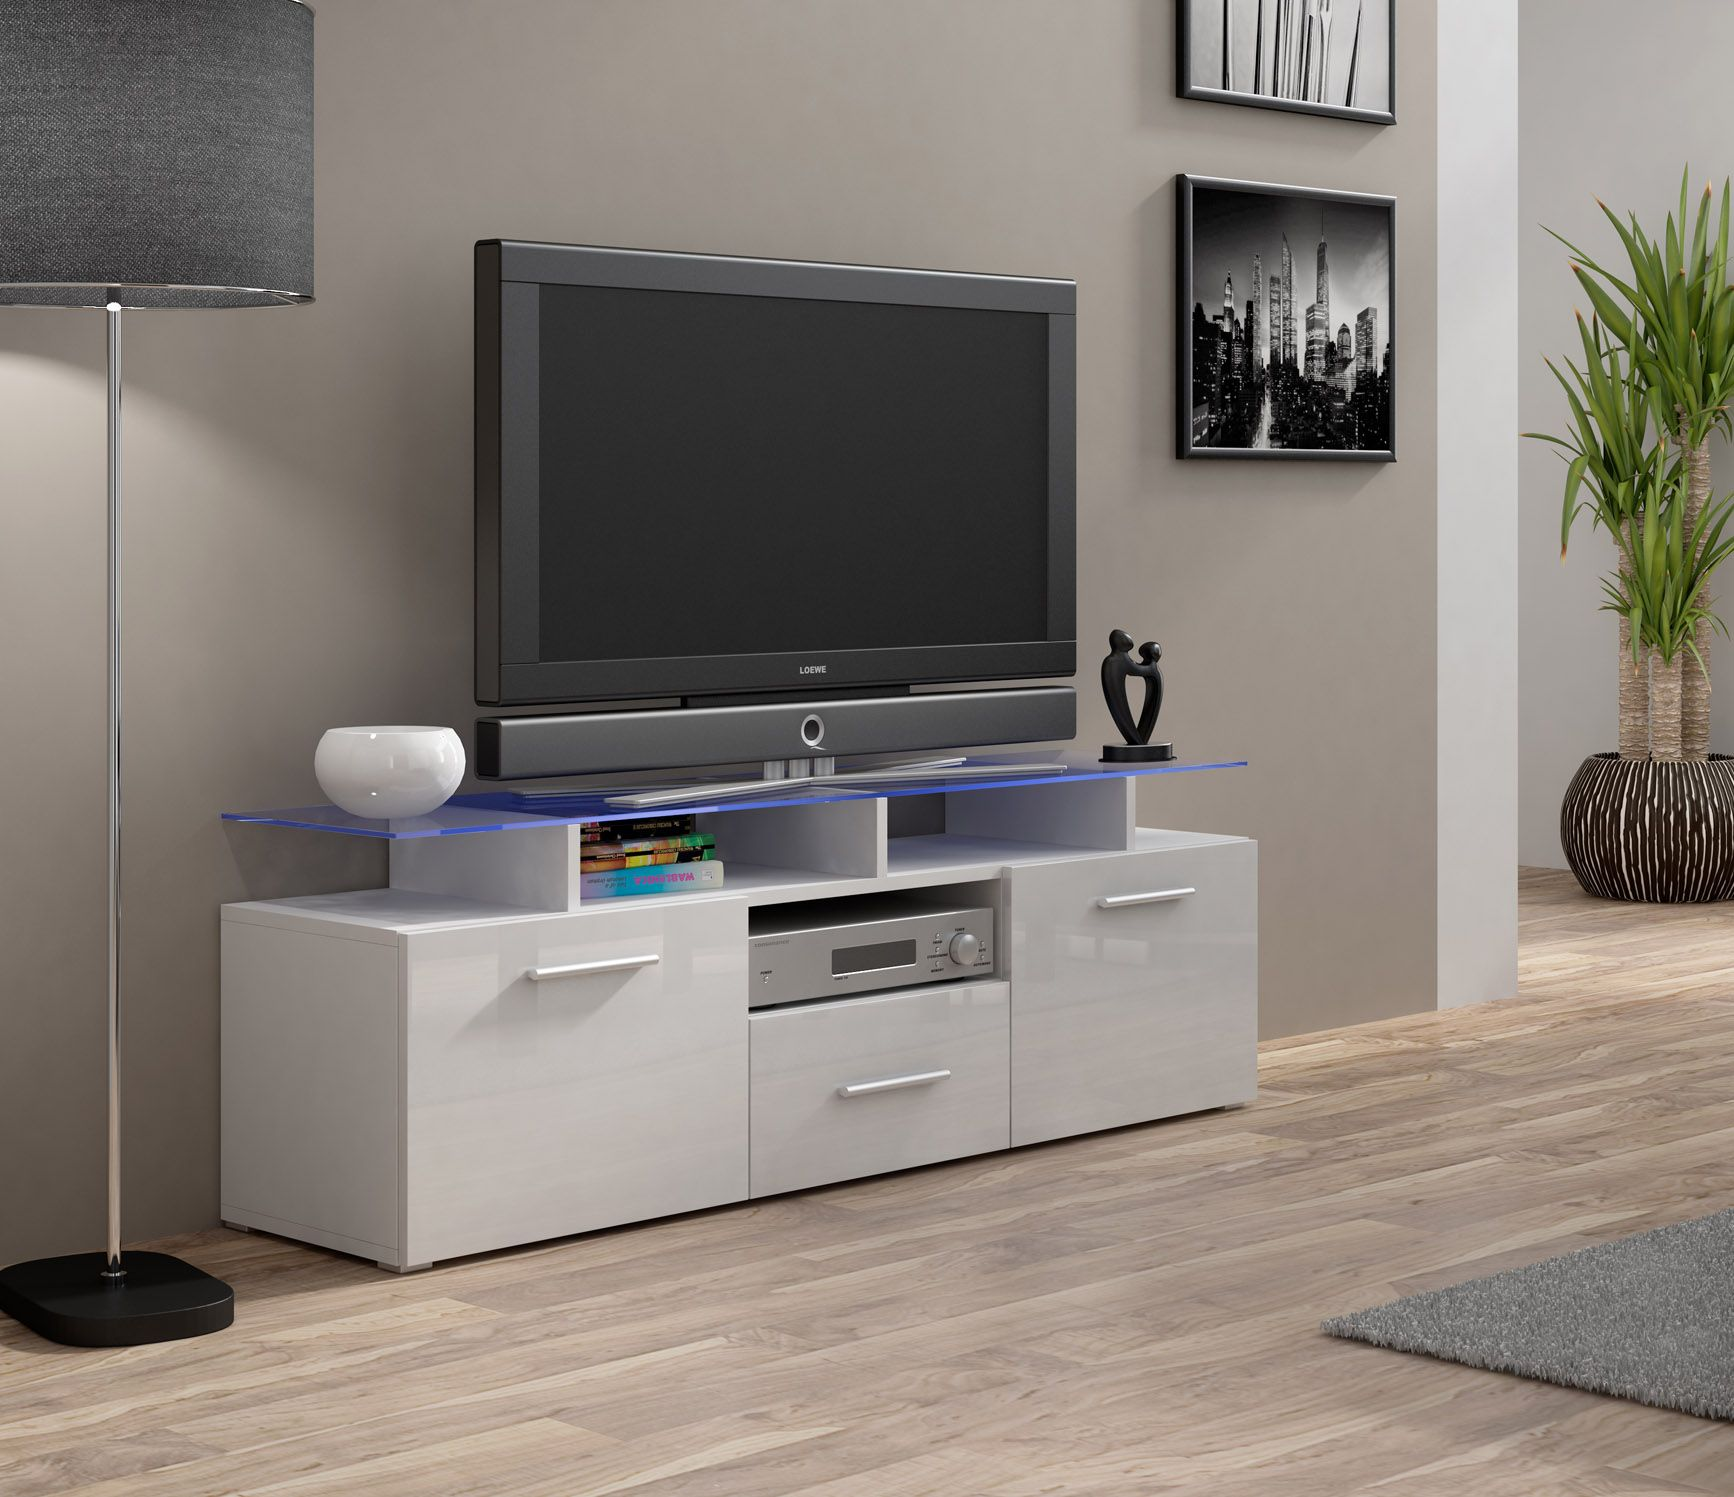 Tv Units Tv Unit Modern Tv Units Tv Stands Design Tv Wall  # Meuble Tv Hifi Design